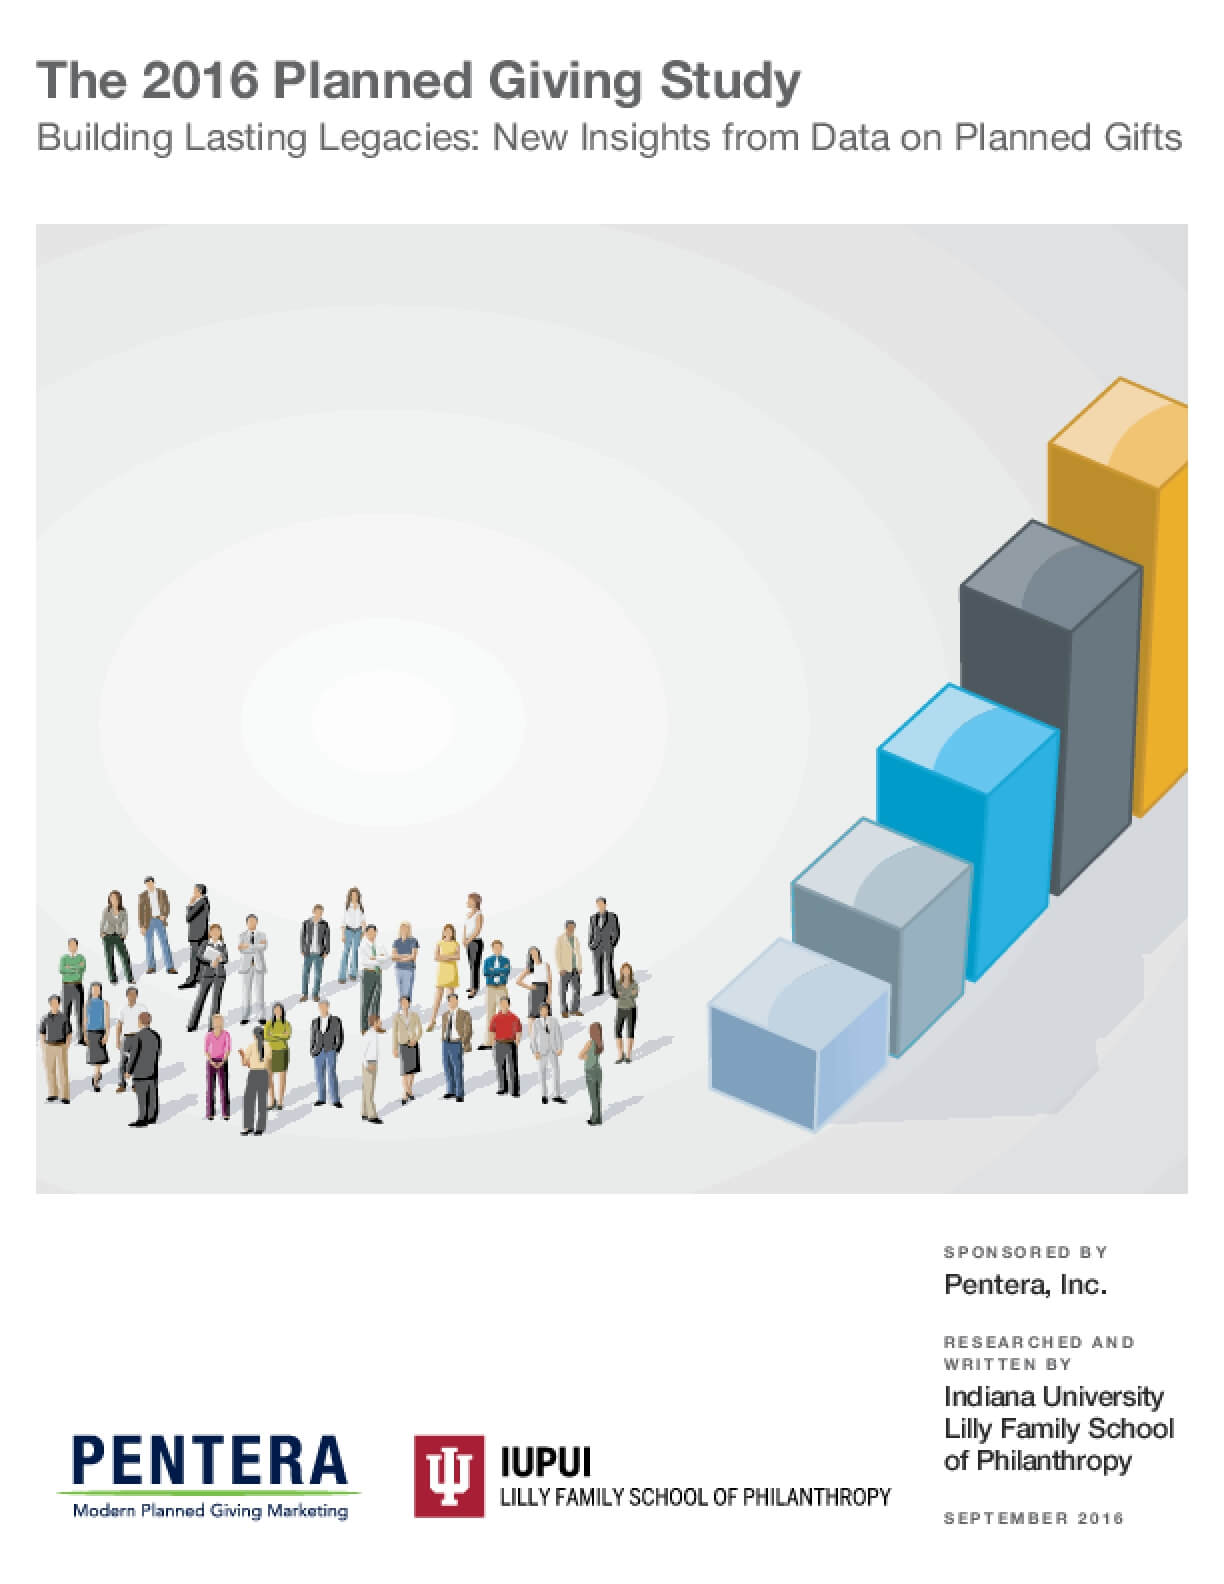 The 2016 Planned Giving Study: Building Lasting Legacies: New Insights from Data on Planned Gifts